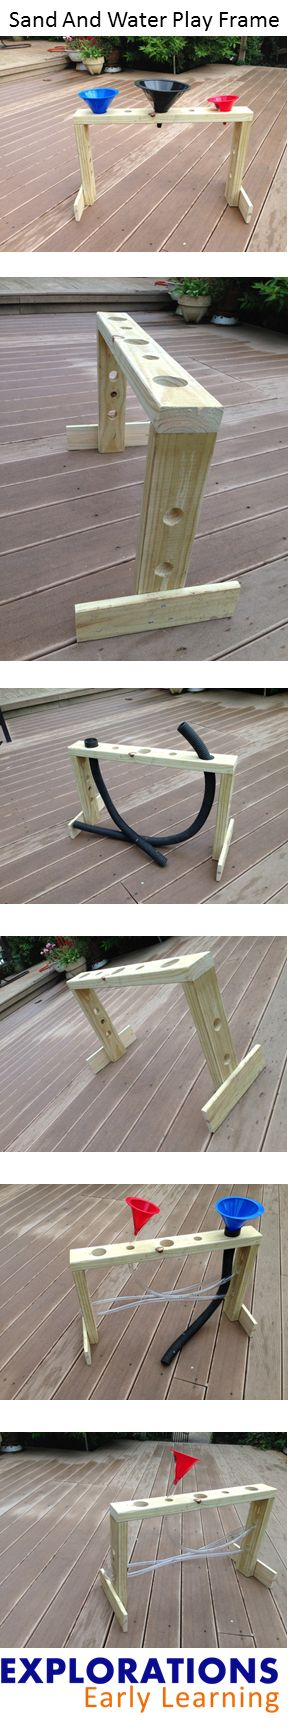 A simple DIY play frame that will add fun to sand and water play...